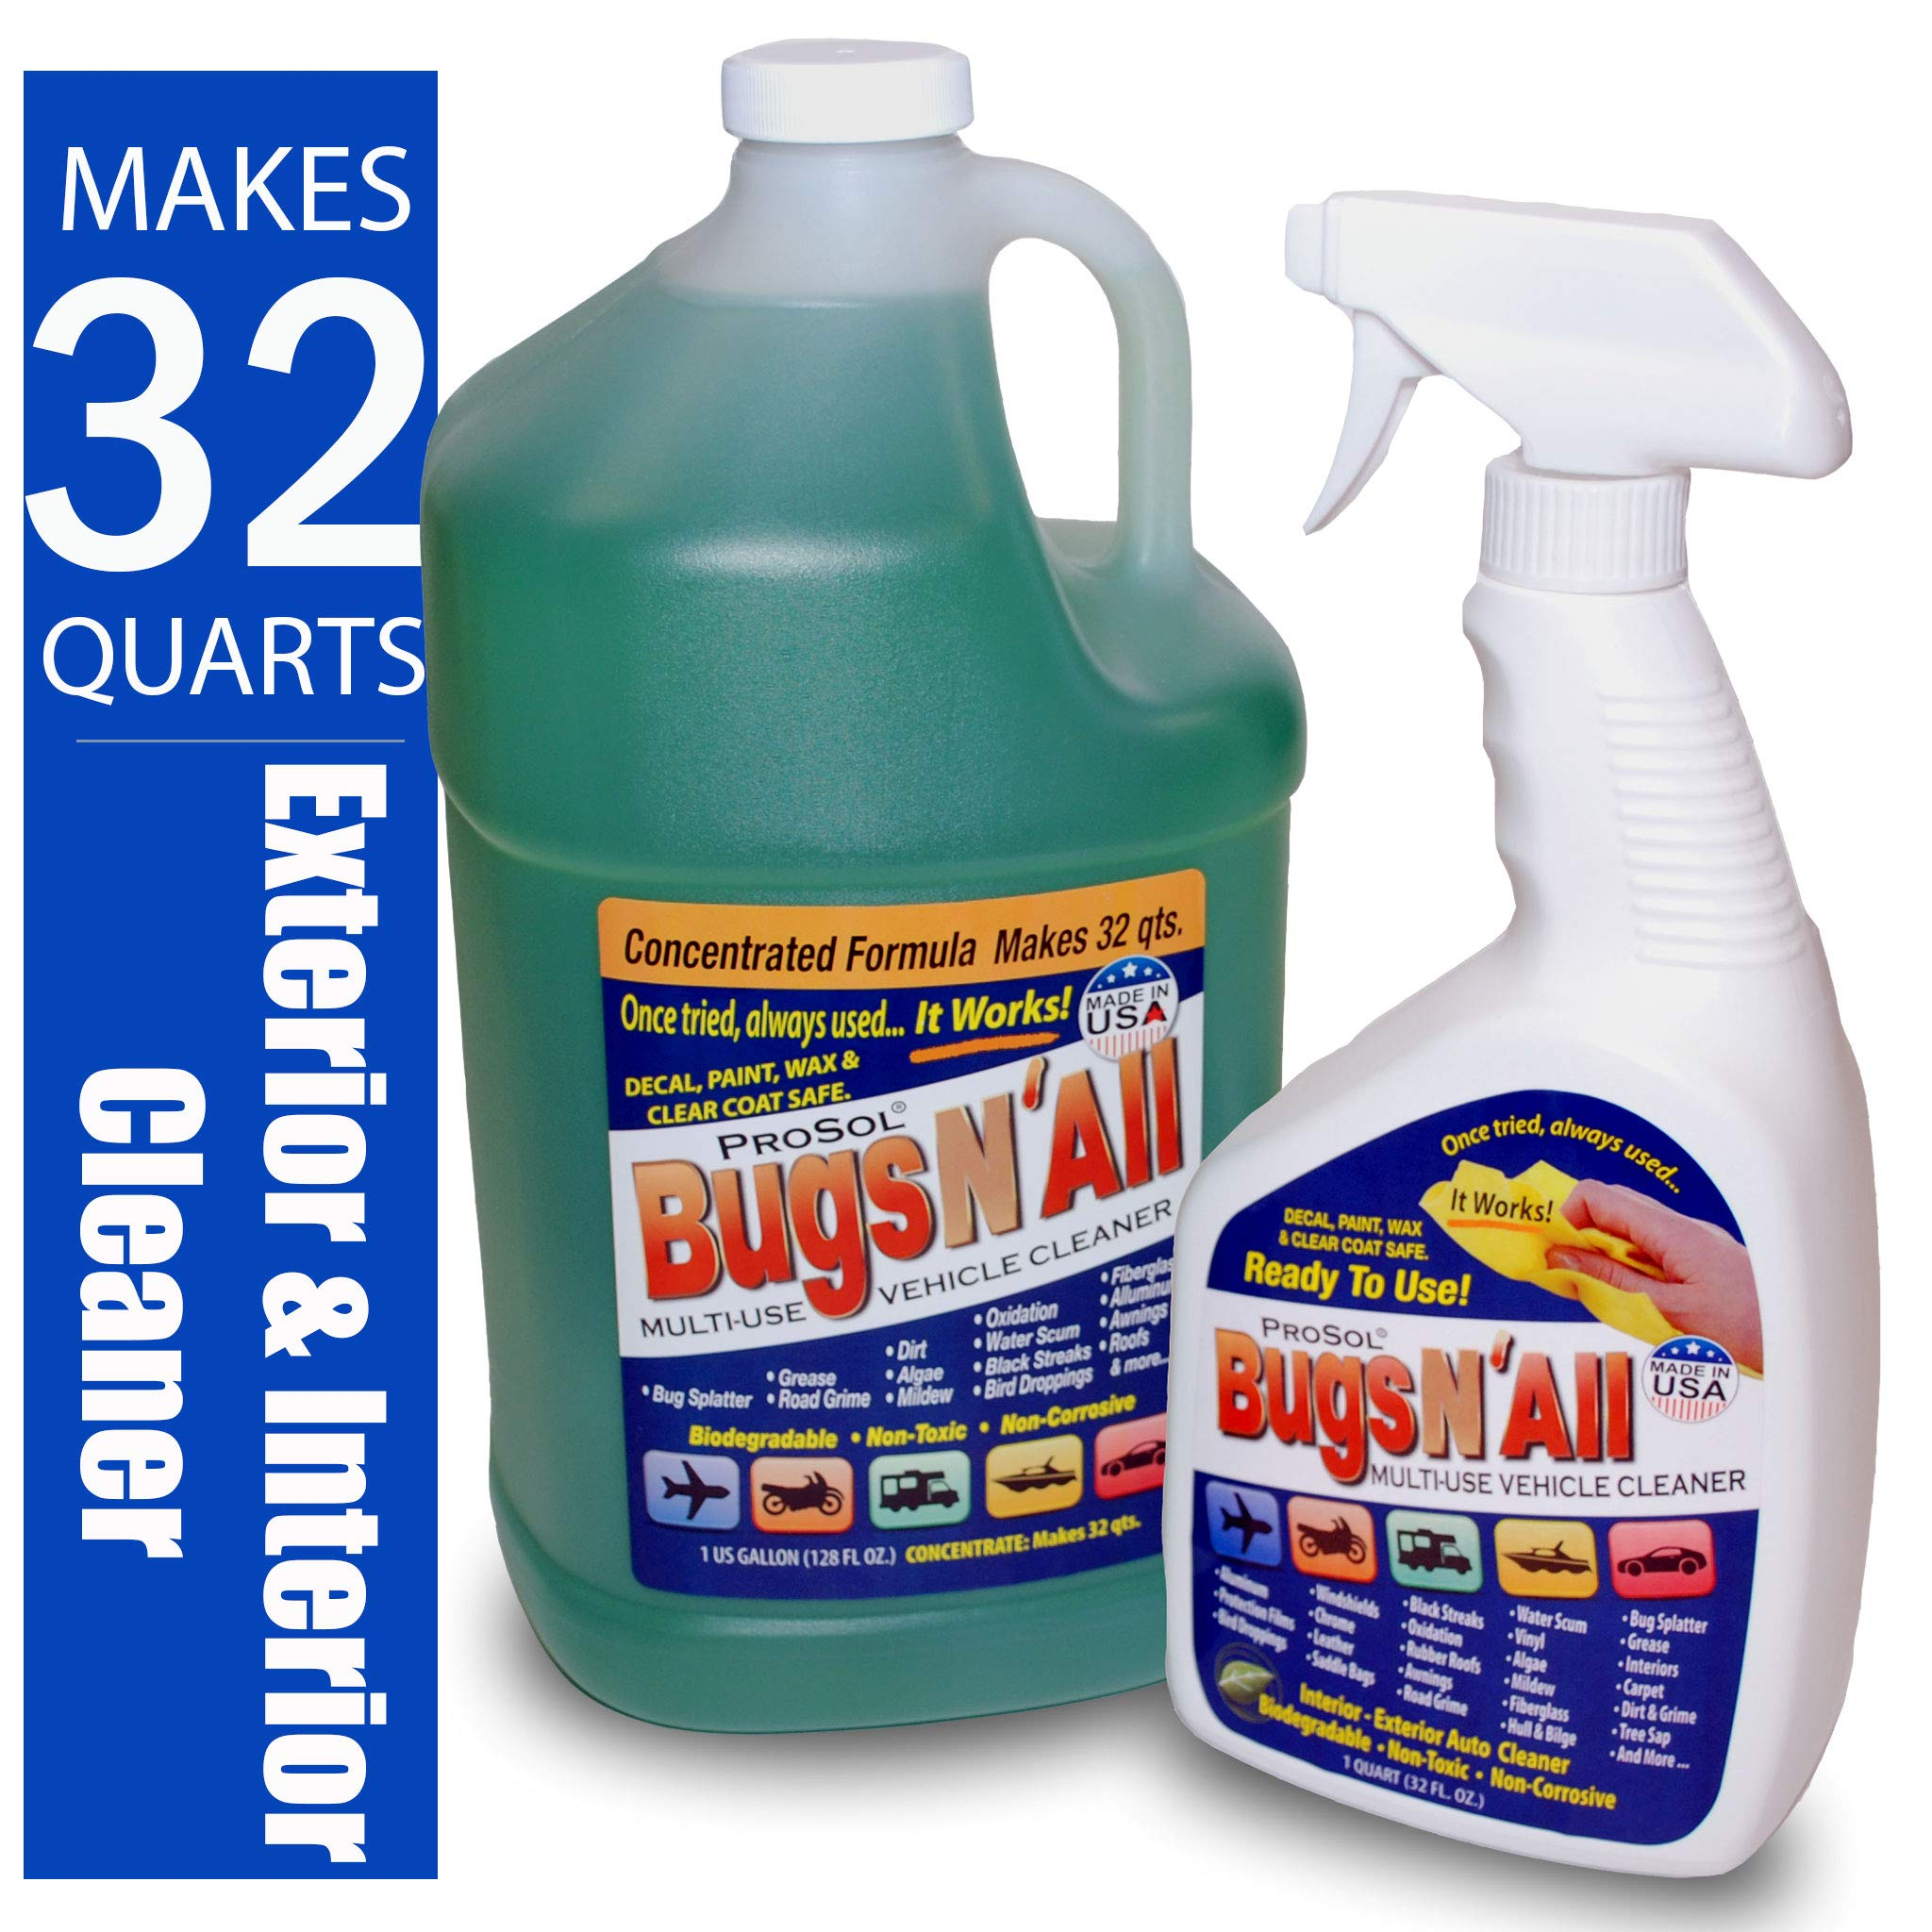 Bugs N All 1 Gal. Concentrate Makes 32 Qts. Pre-Wash Vehicle Cleaner - Bug Splatter and Black Streak Remover. Includes an Empty 32 oz. Spray Bottle - Will Not Remove Wax! by ProSol (Image #1)